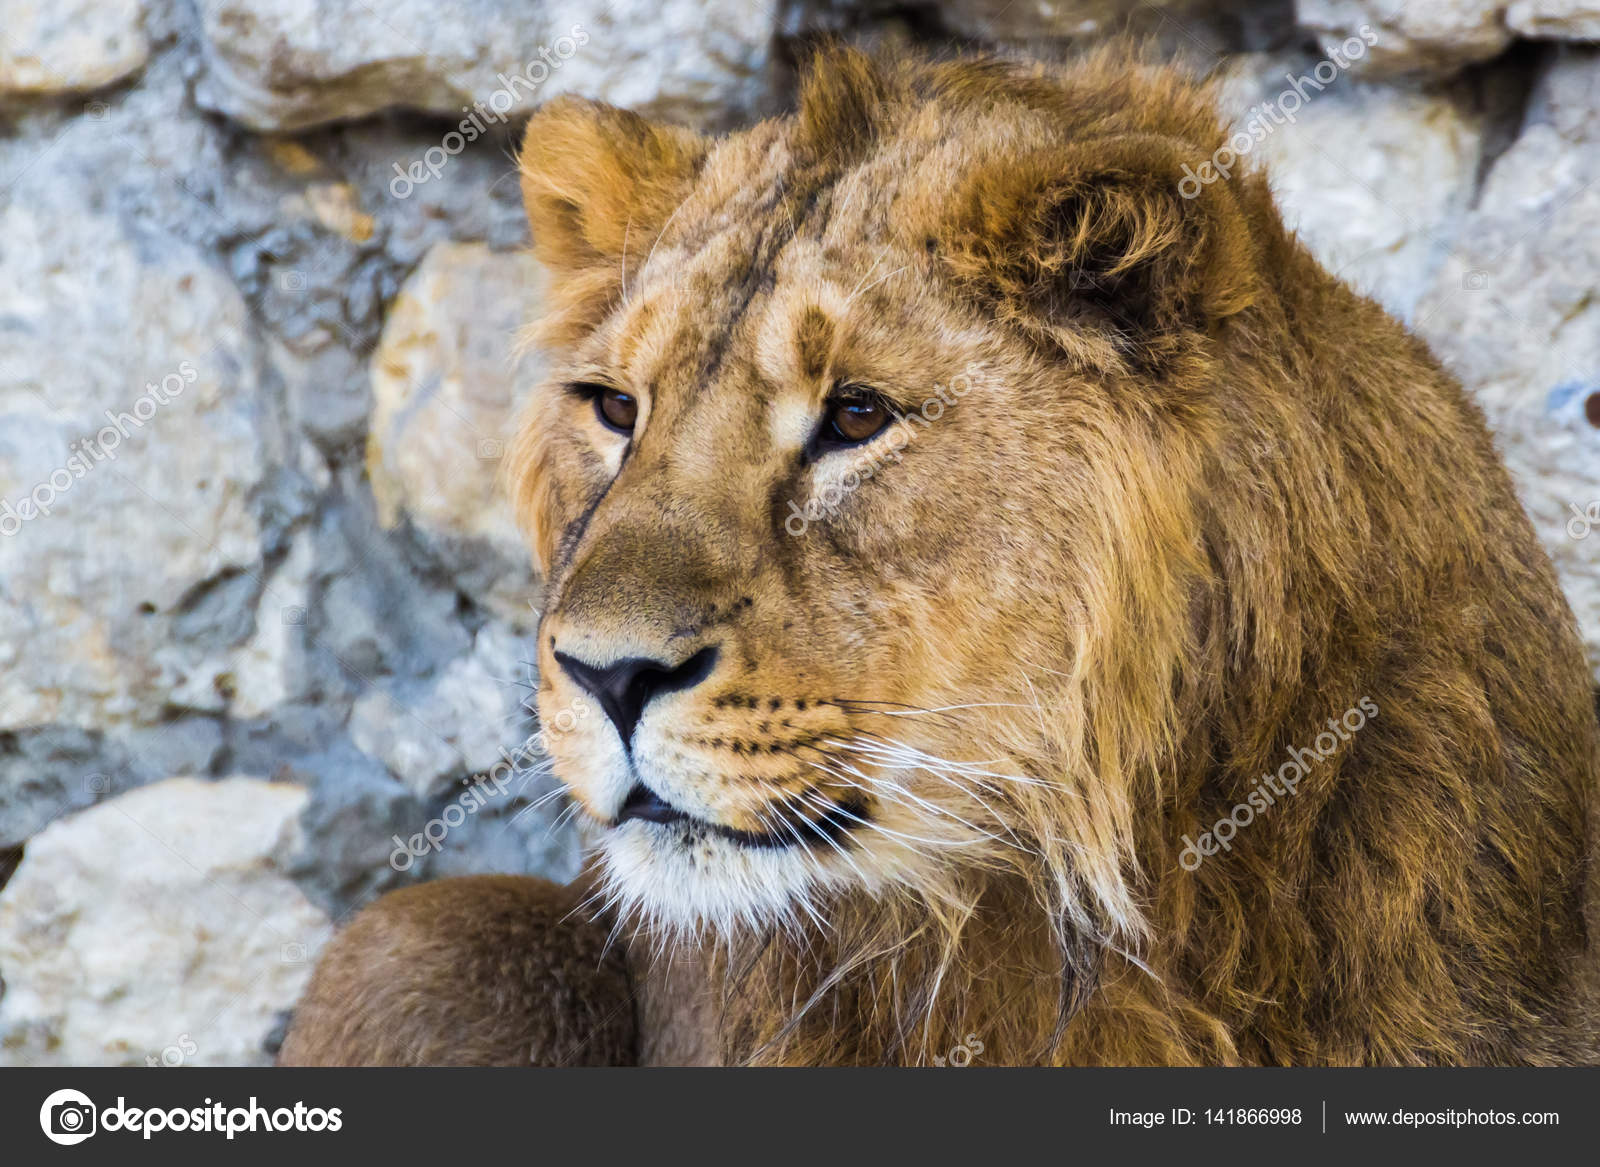 the asiatic lion The barbary lion was a panthera leo leo population in north africa that is regionally extinct today  it falls into the same phylogeographic group as the asiatic lion the barbary lion was also called 'north african lion', 'berber lion', 'egyptian lion', and 'atlas lion.